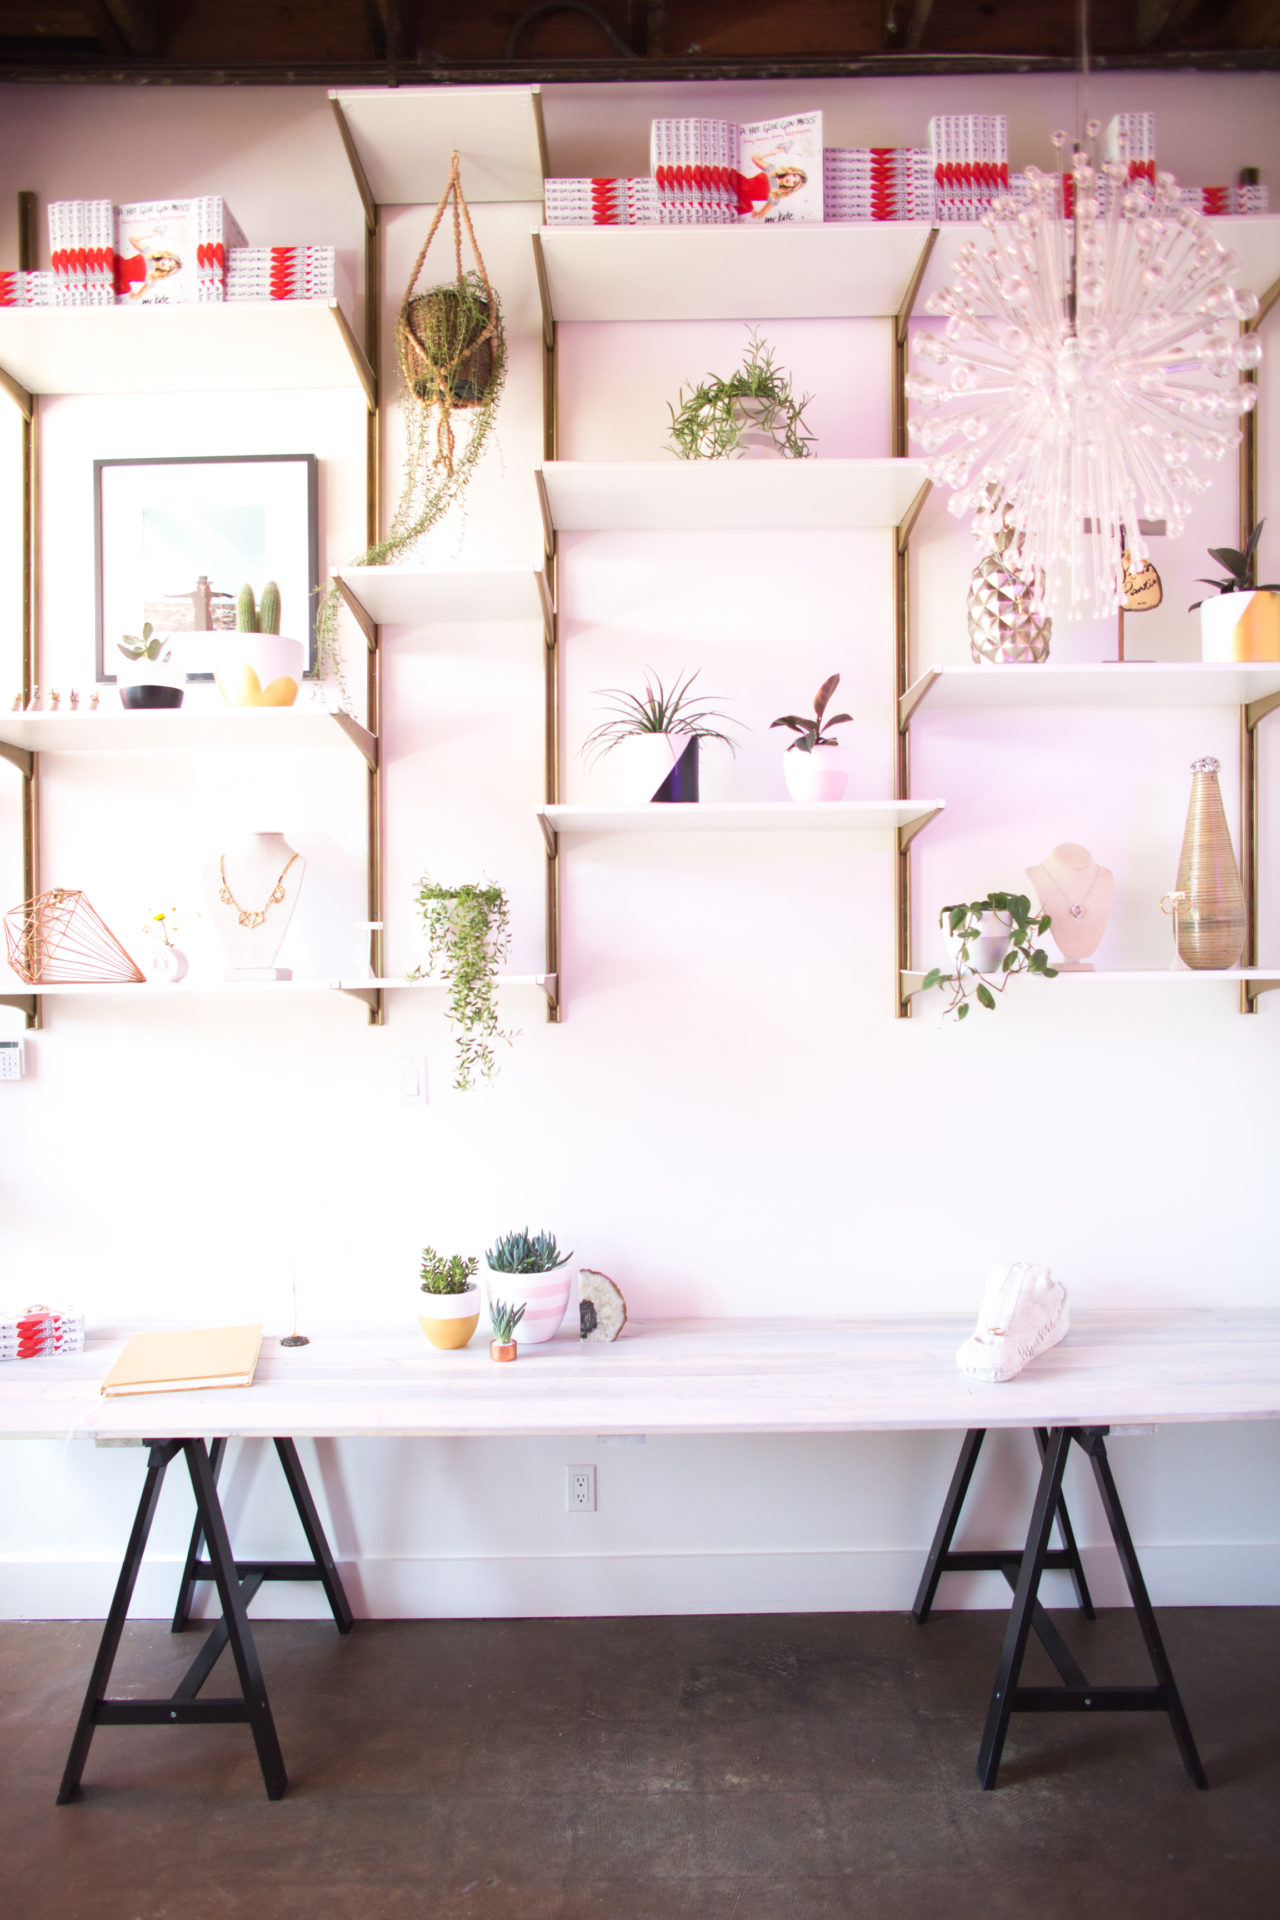 MrKate_Reveal_Hello_OfficeGoals_Blog (26 of 101)